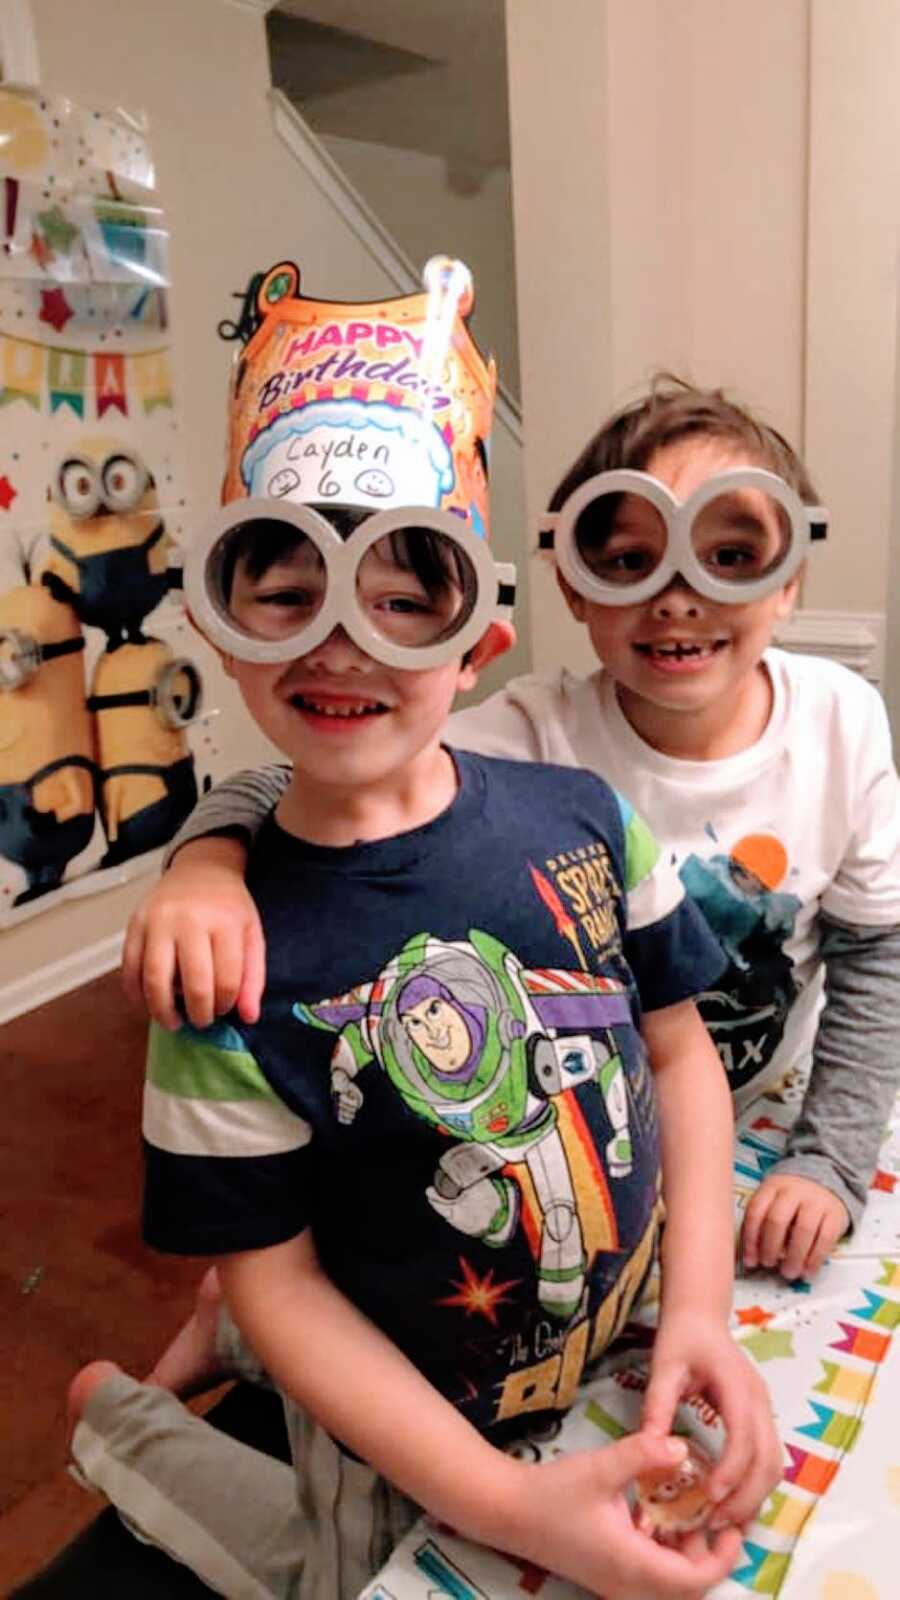 Mom snaps a photo of her two sons having fun at her son's Minion-themed birthday party